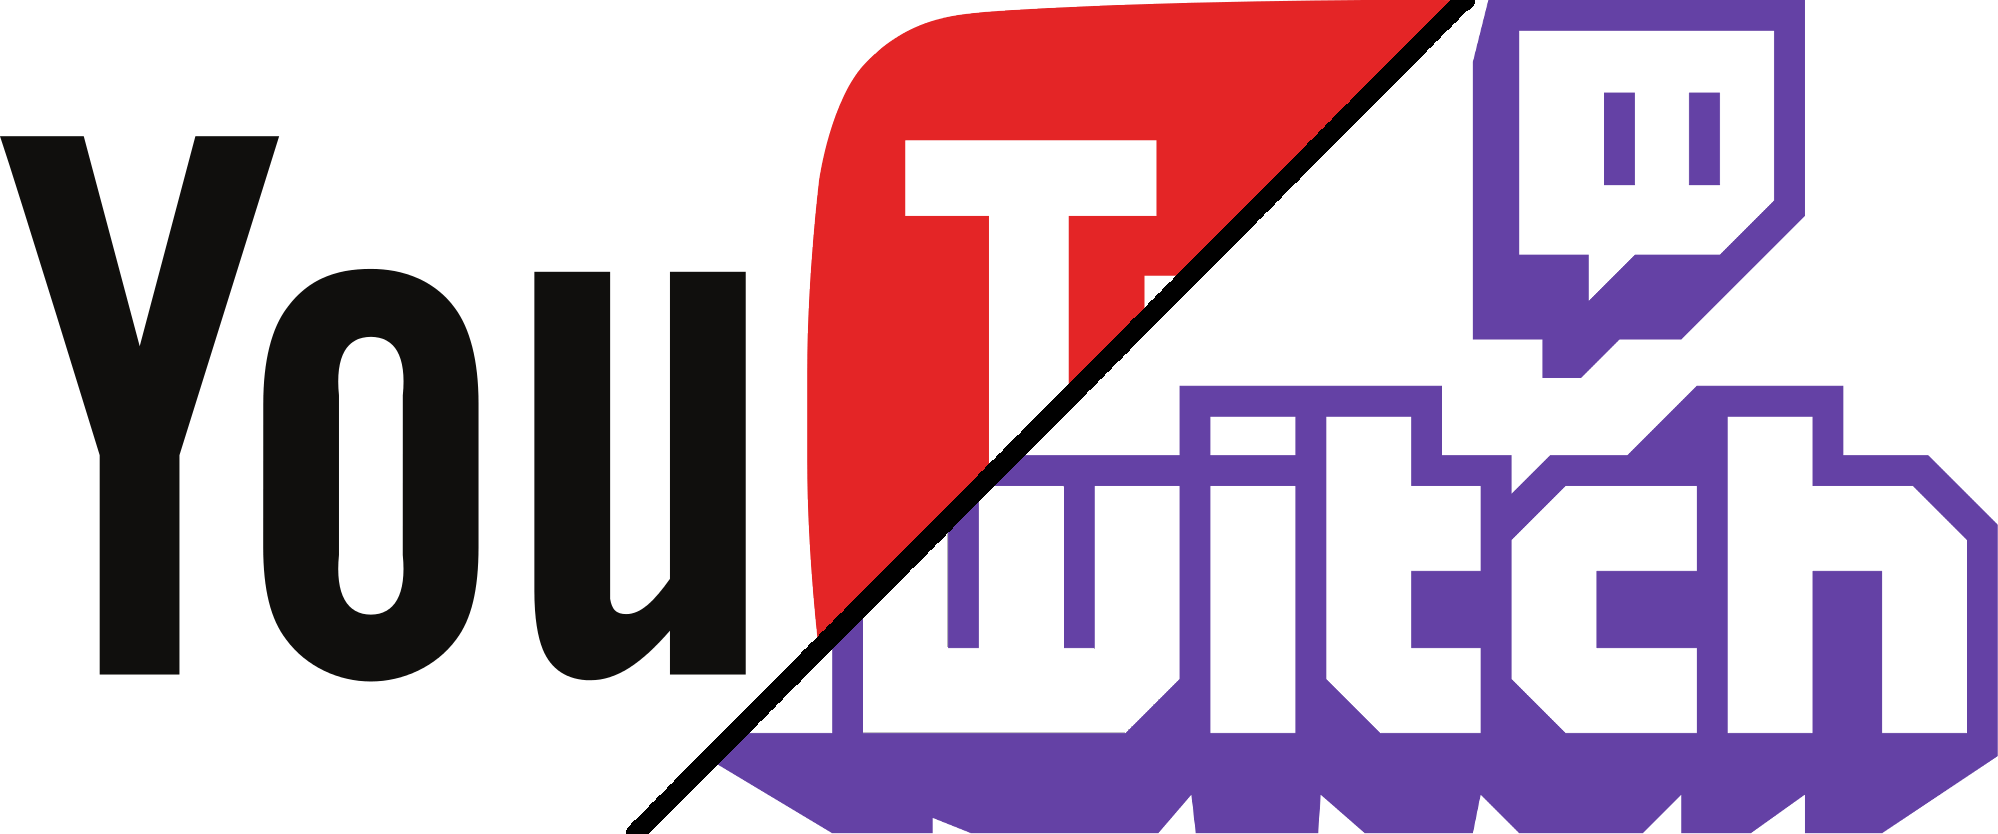 Twitch png logo. New and youtube feature